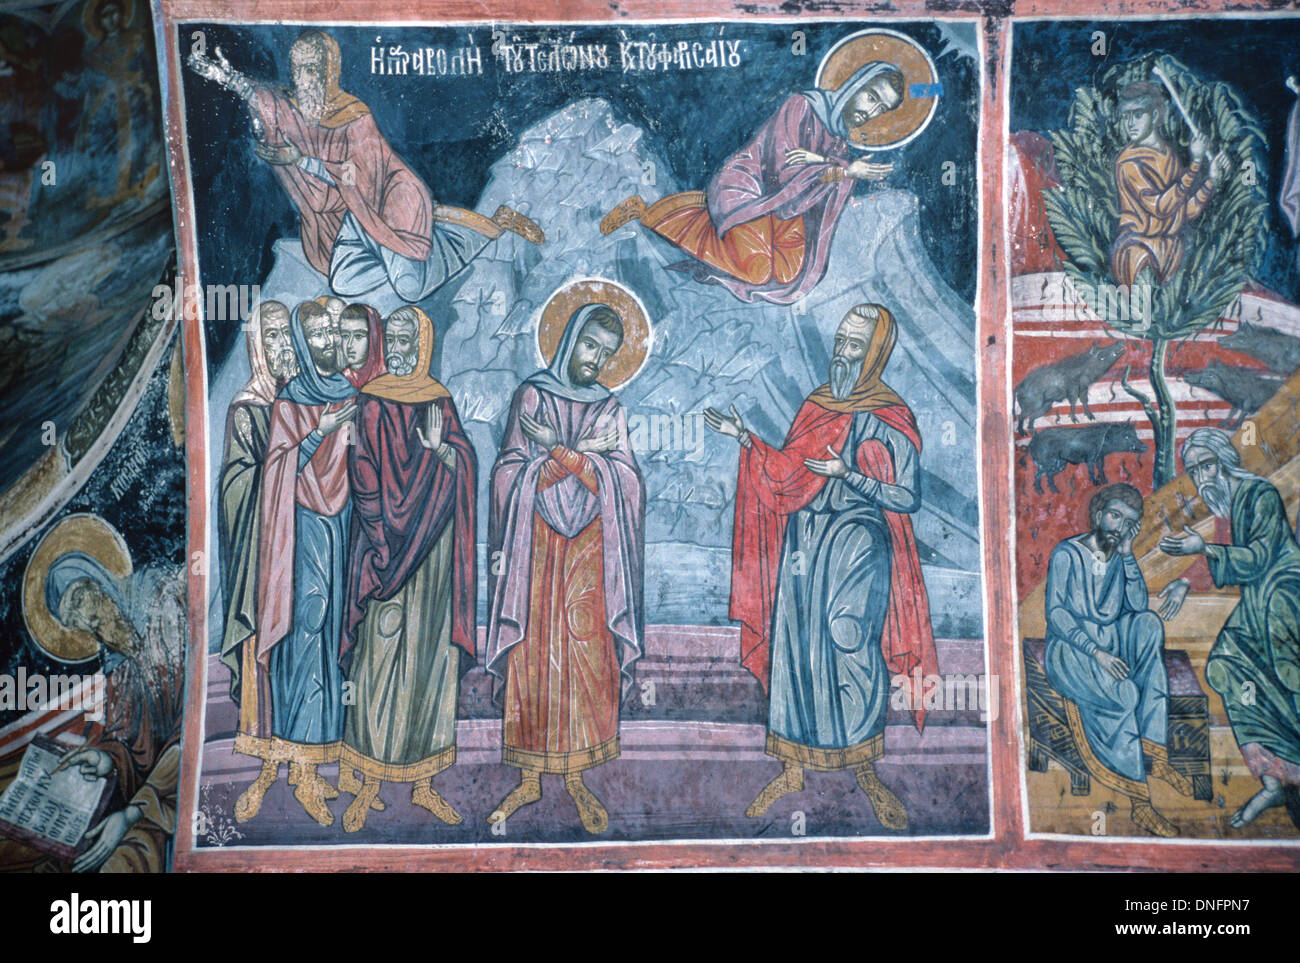 Parable of the Pharisee & the Publican or the Tax Collector, Fresco 1682, Kaisariani Church & Monastery Athens Greece - Stock Image